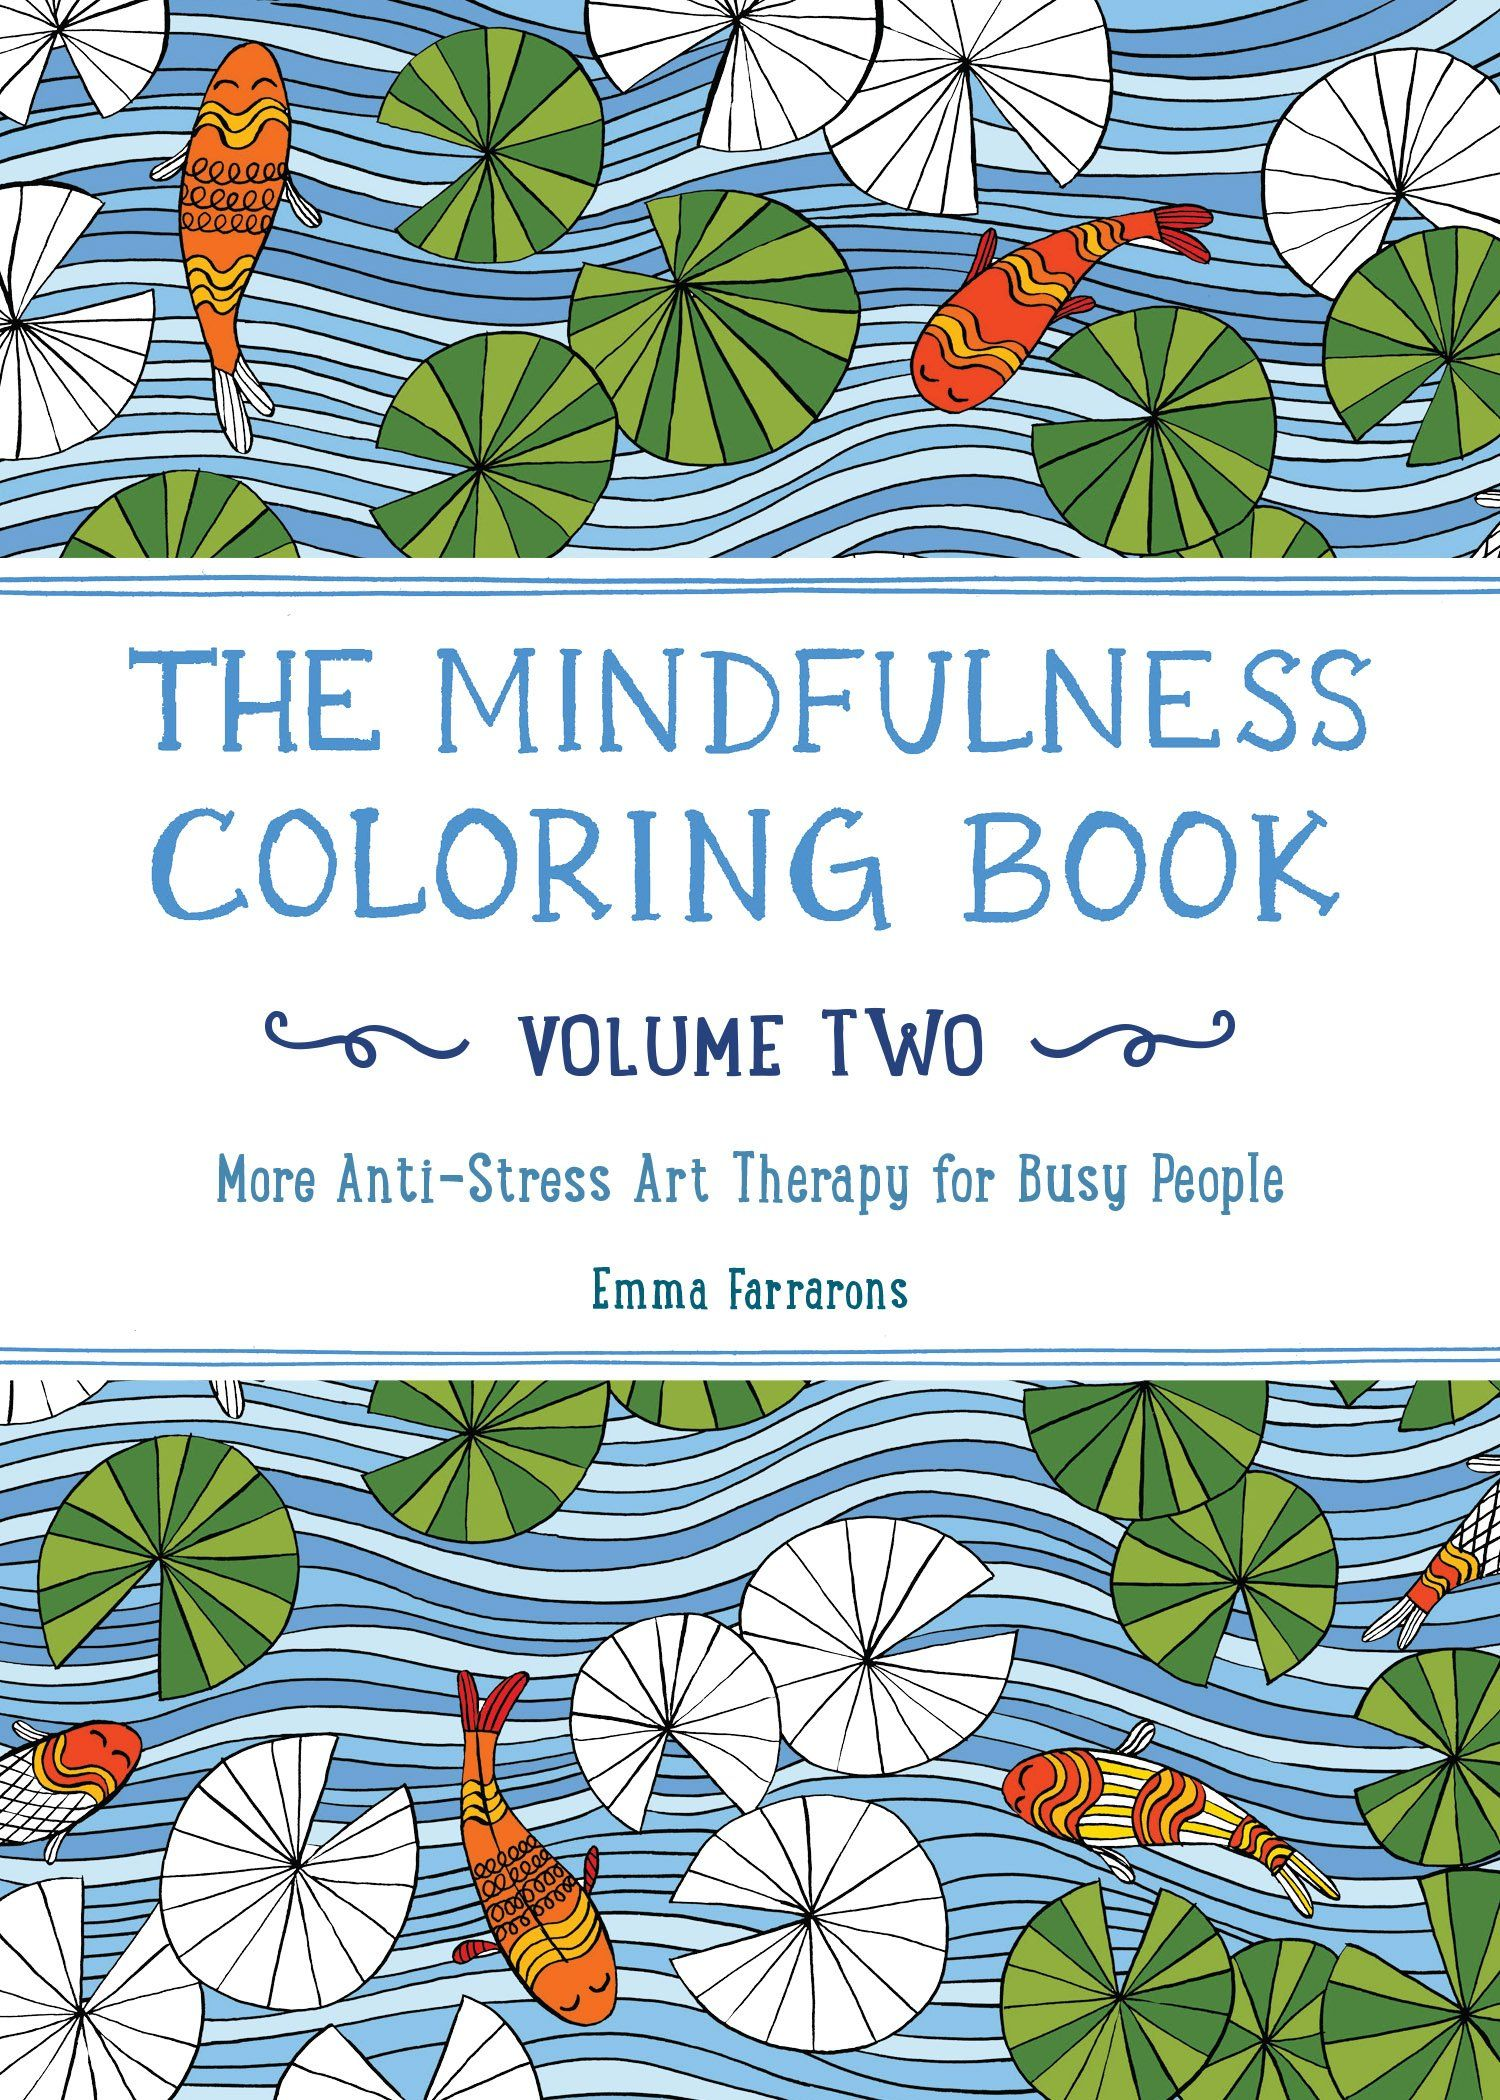 This Is A Pocket Size Coloring Book Designed To Channel Stress Into Relaxing Creative Accomplishments